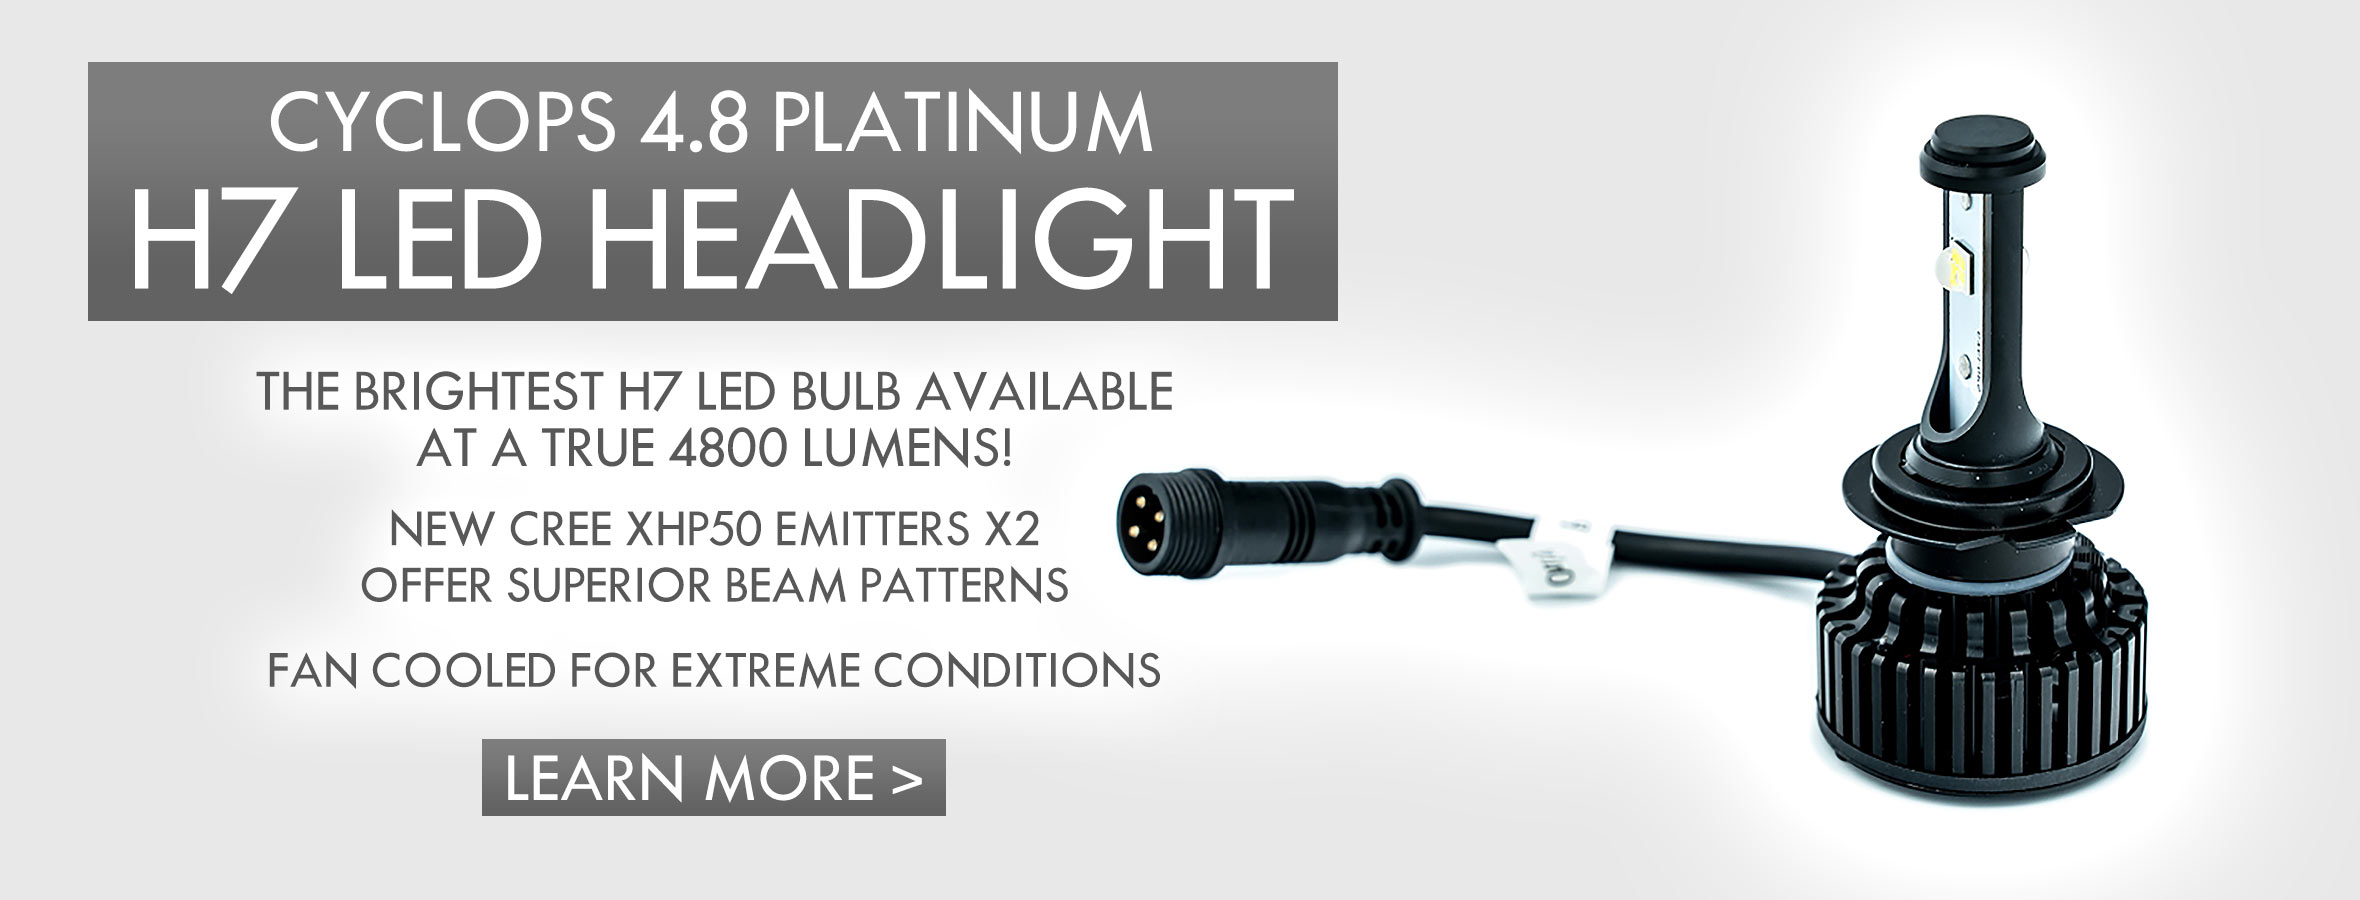 4.8 Platinum H7 LED Headlight Bulb